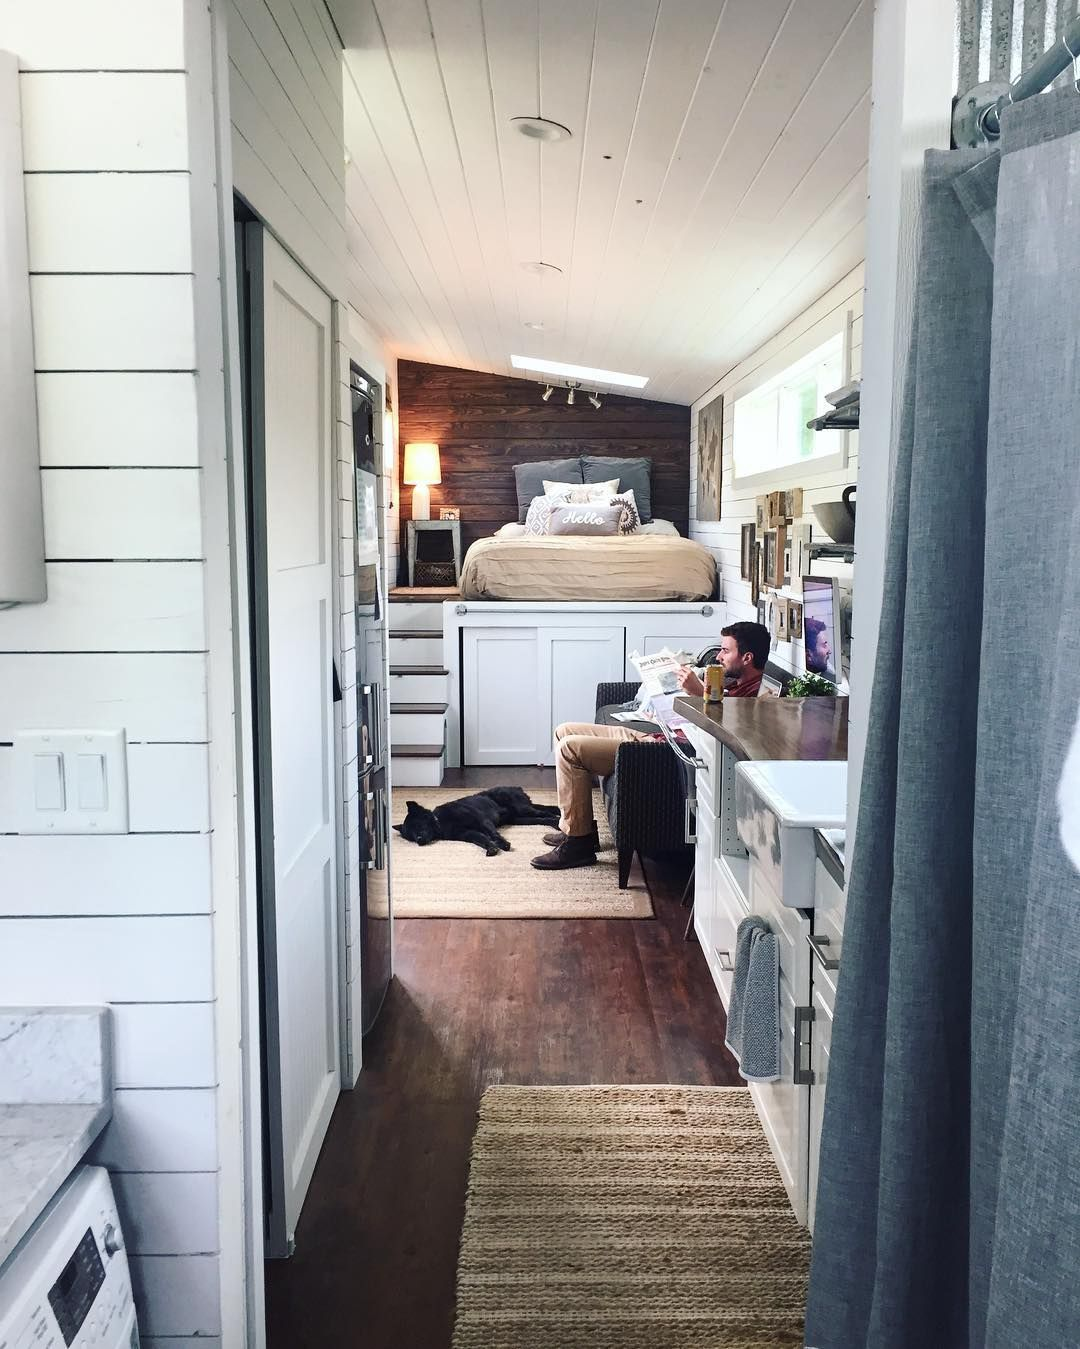 View toward kitchen the alpha tiny home by new frontier tiny homes - House No Loft Tiny